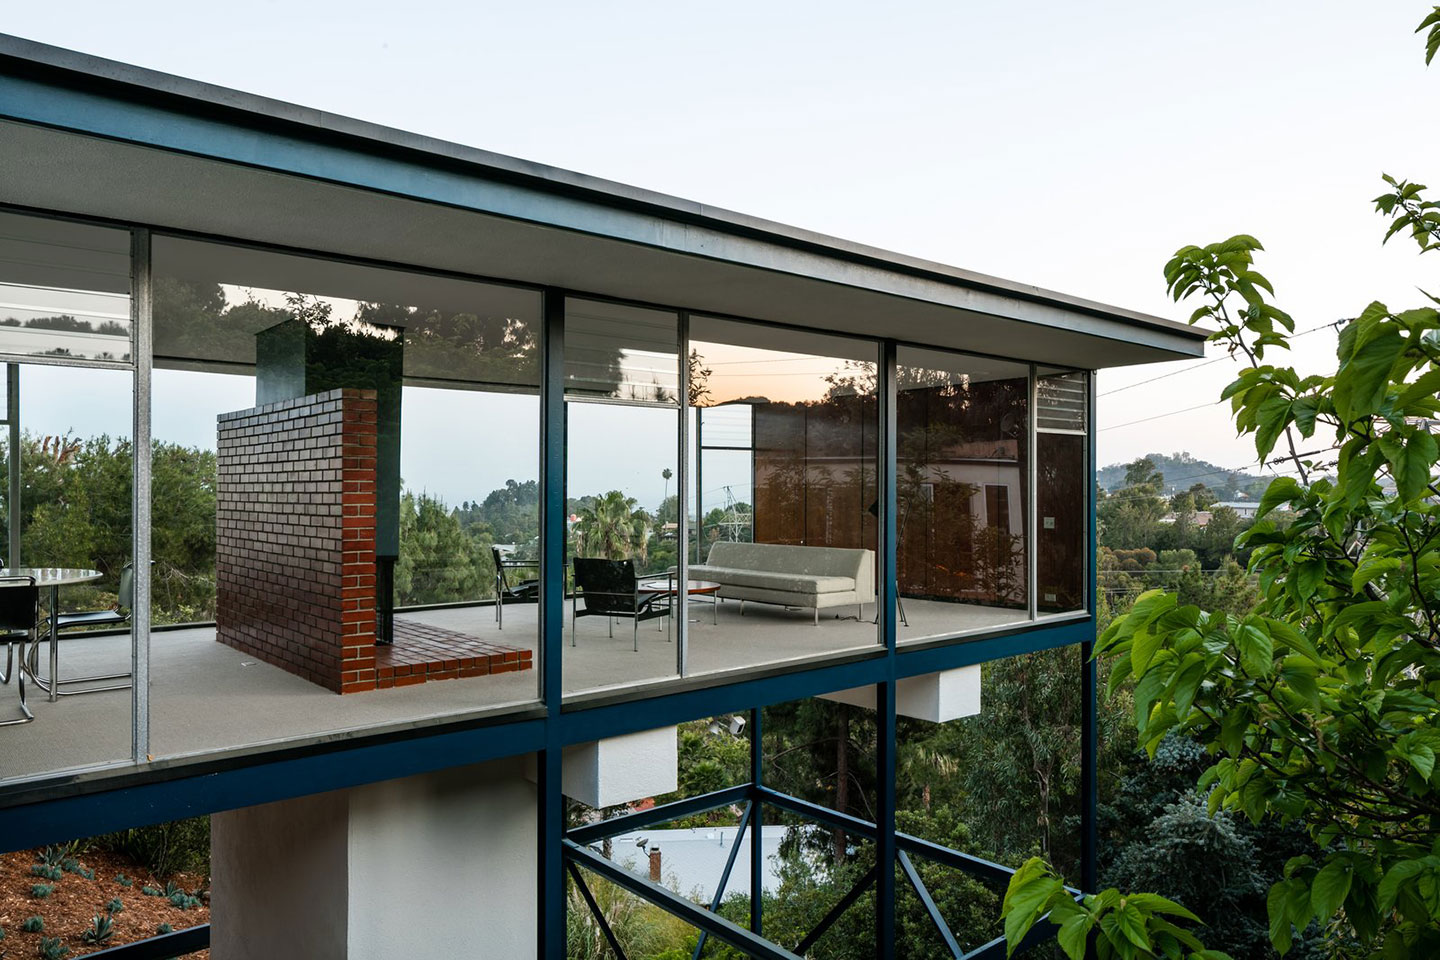 Modern Architecture Los Angeles 16 homes by iconic modernist architects — the agenda by